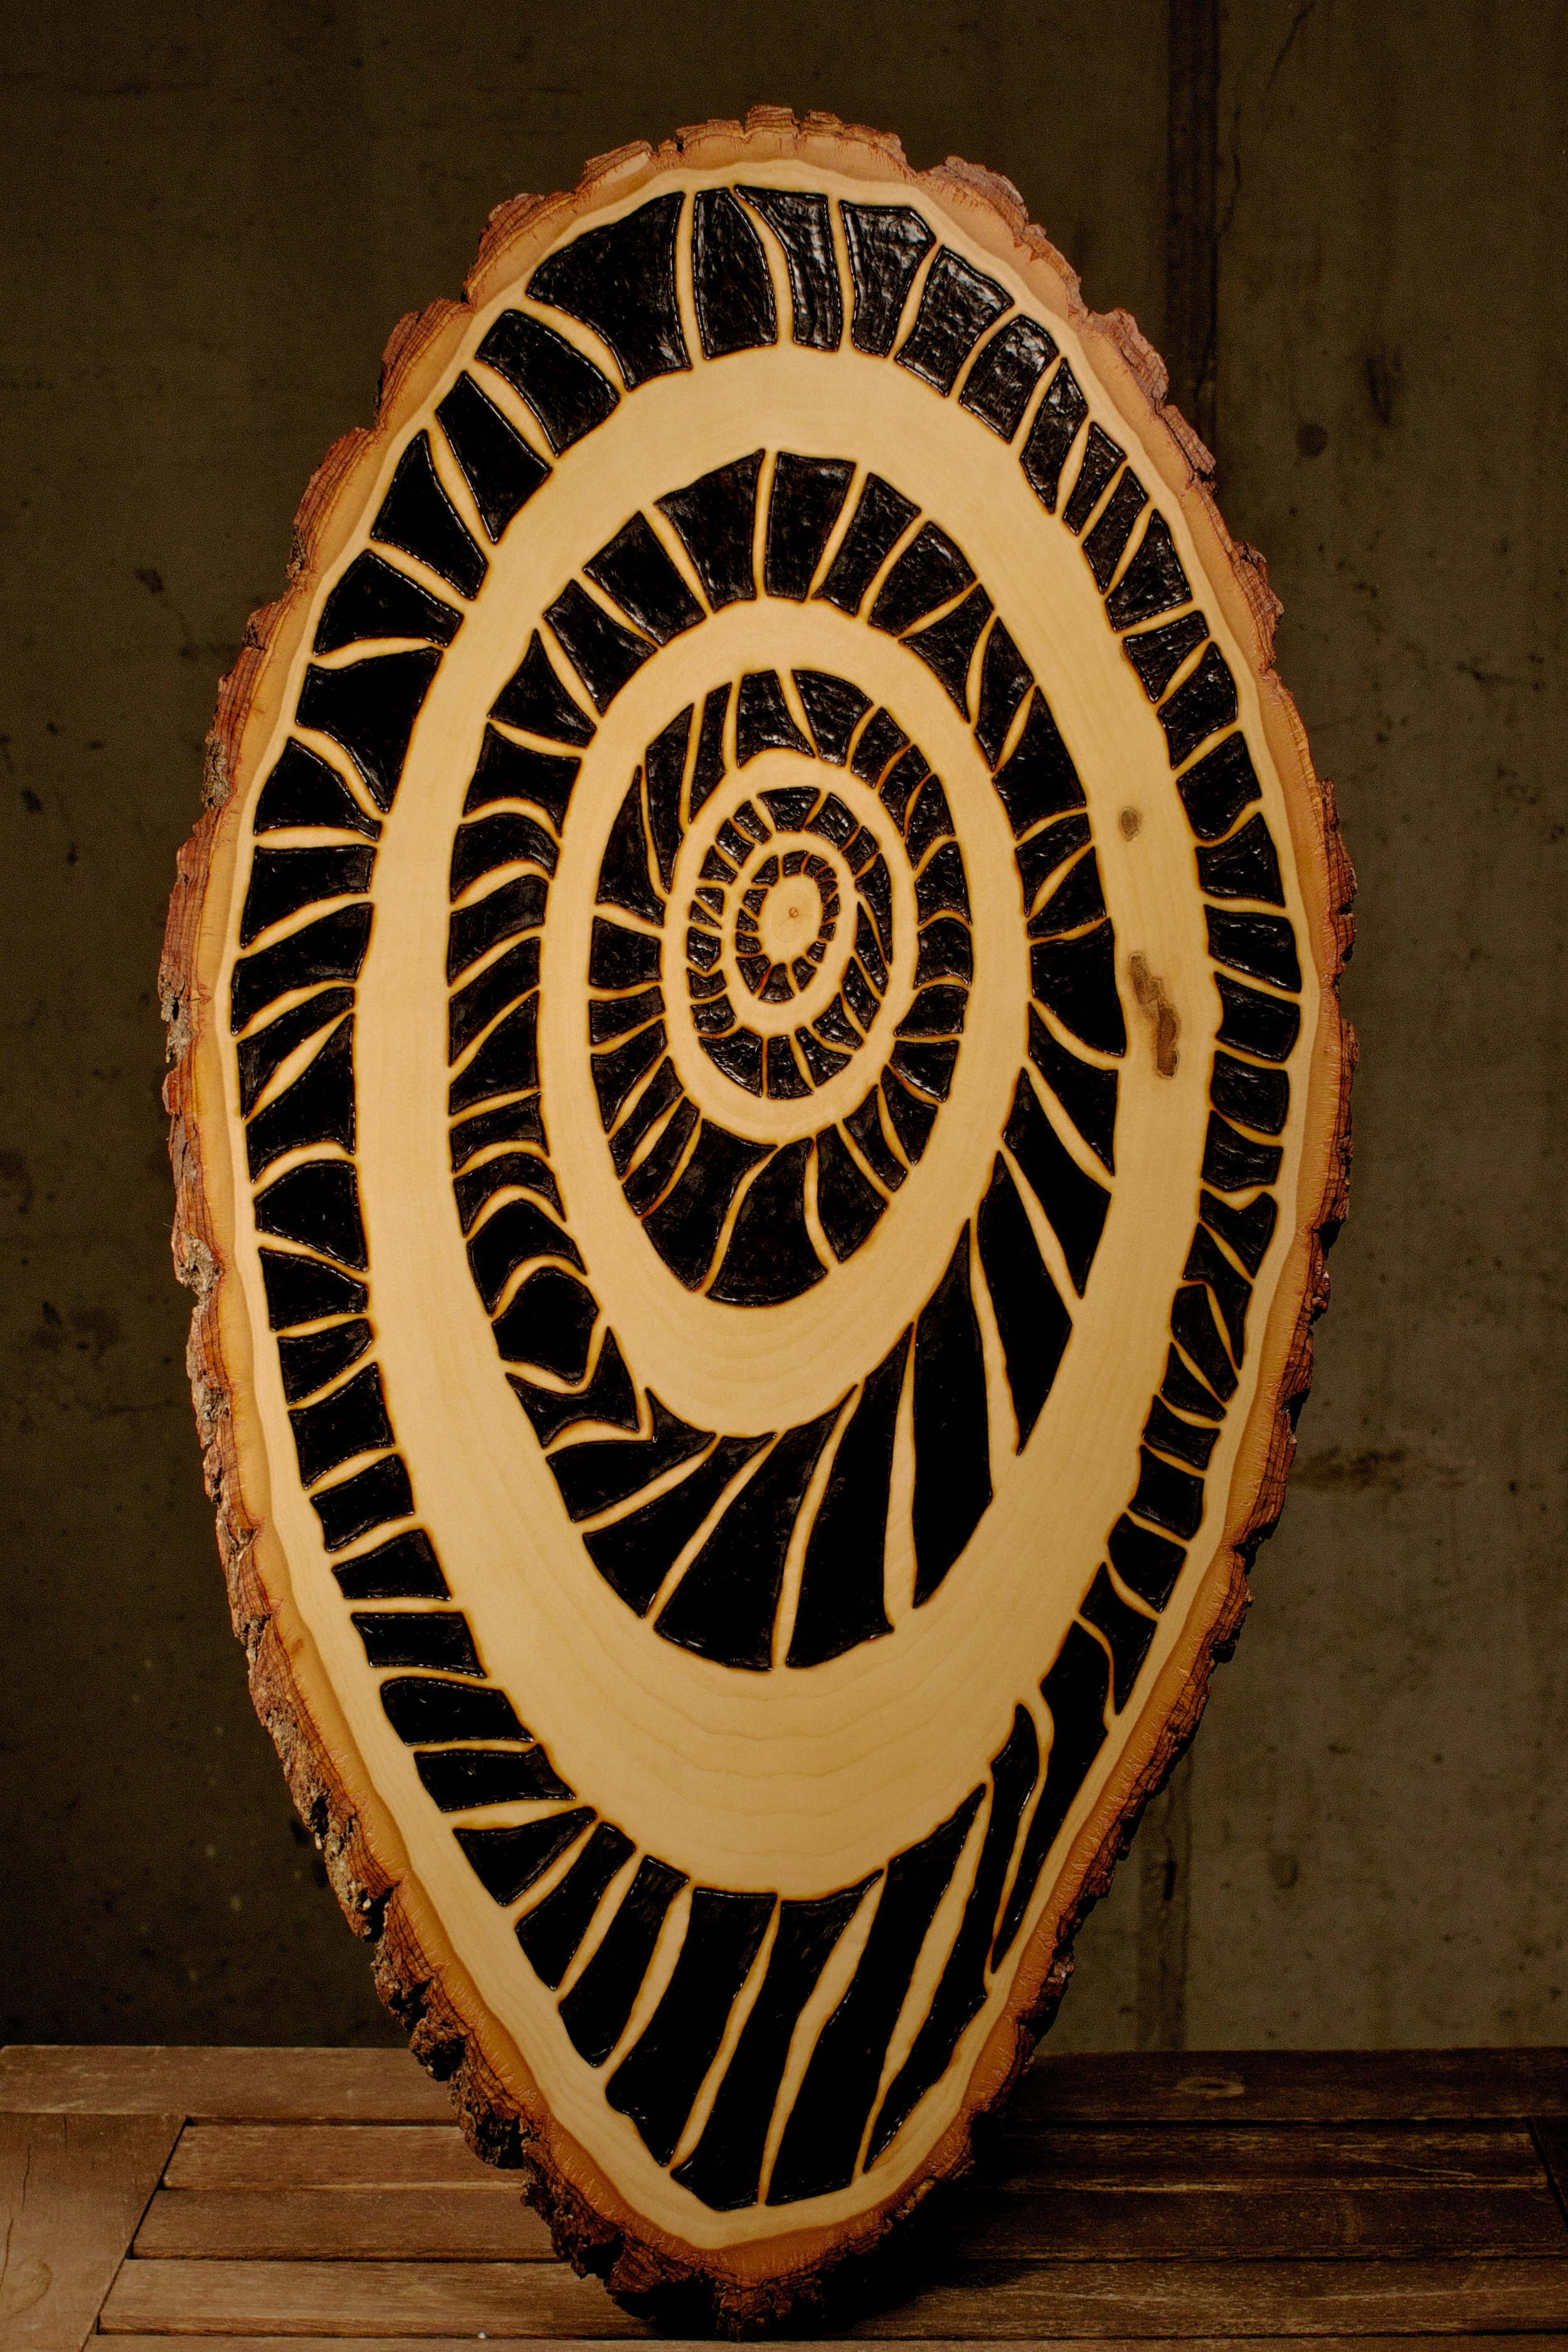 Time (2016)   Wood Burning on Bass Wood Bark Slab   19 ½ in x 1 in x 10 in   $300.00    For Inquiry Email bzartsgallery@gmail.com